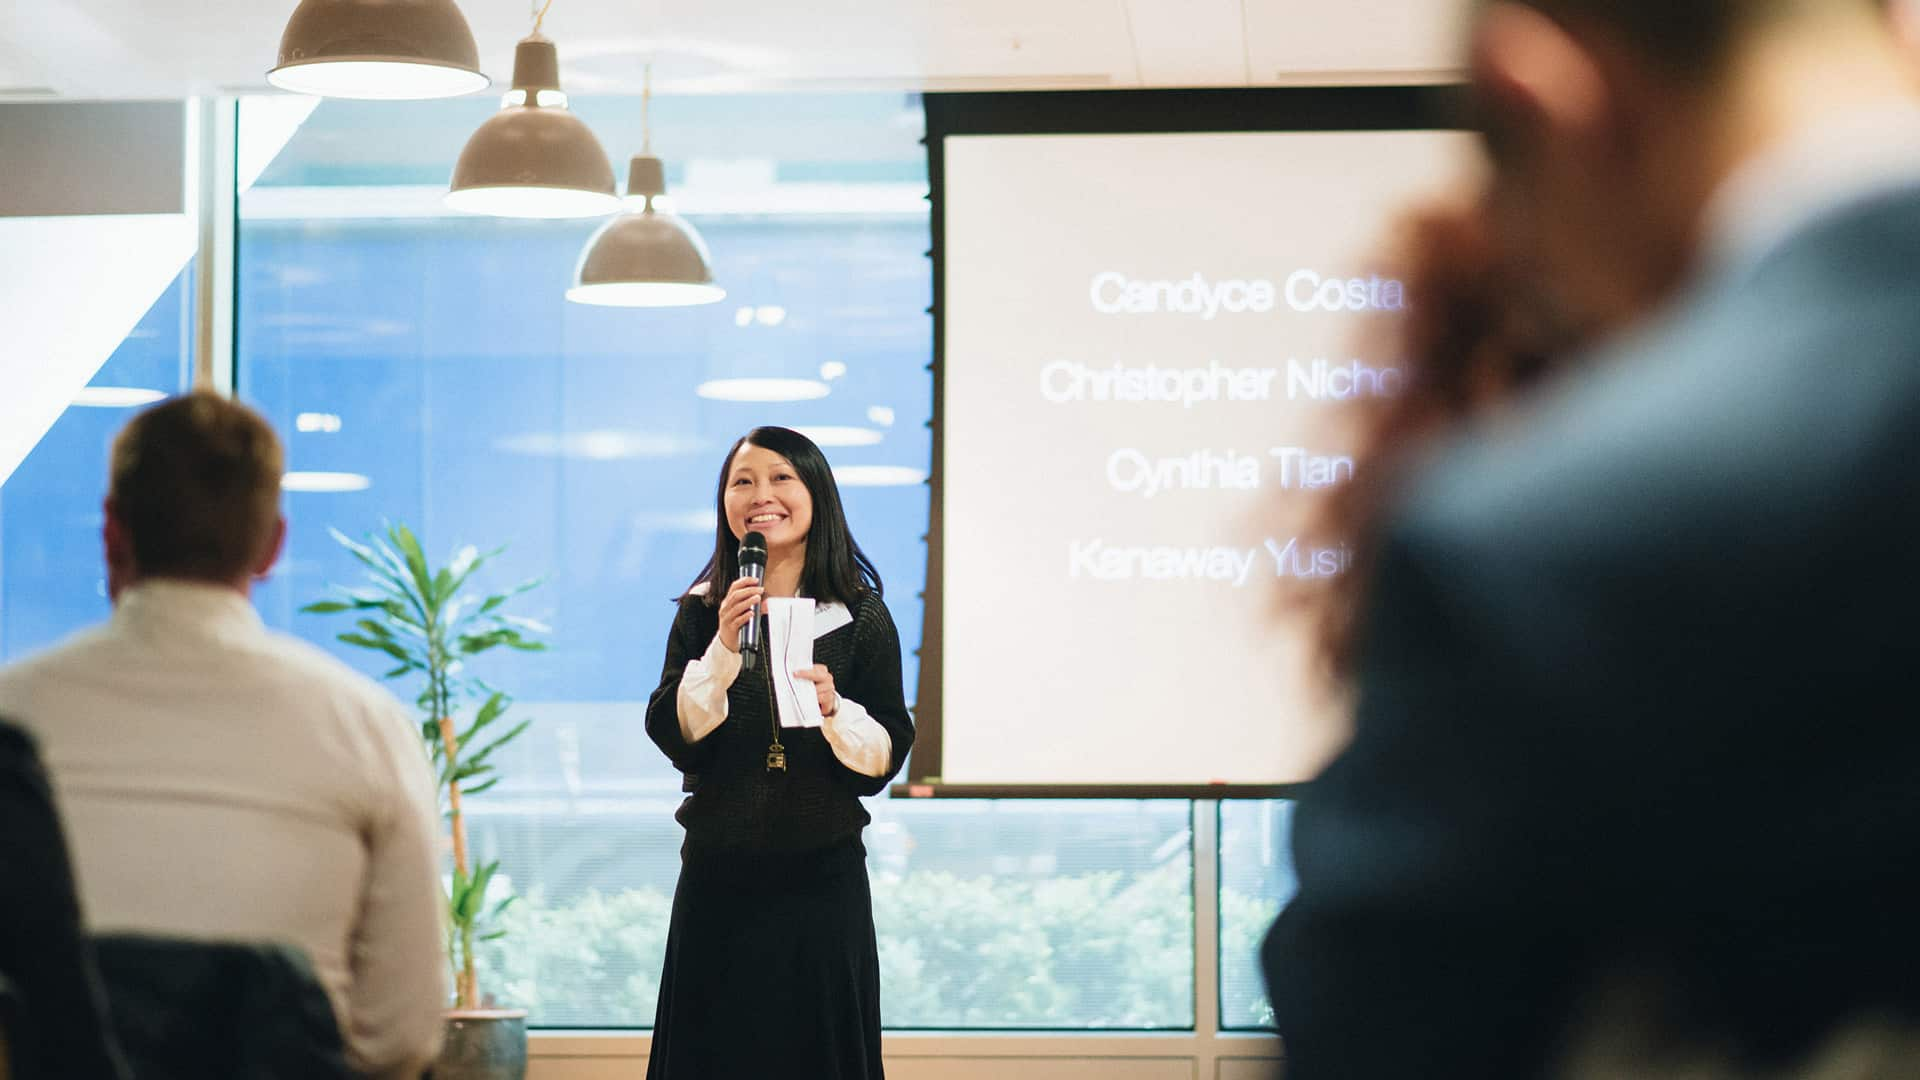 Clarice-Lin-Vivid-Talks-WeWork-Moorgate-May-16-2018-Clarice-DSC_7660